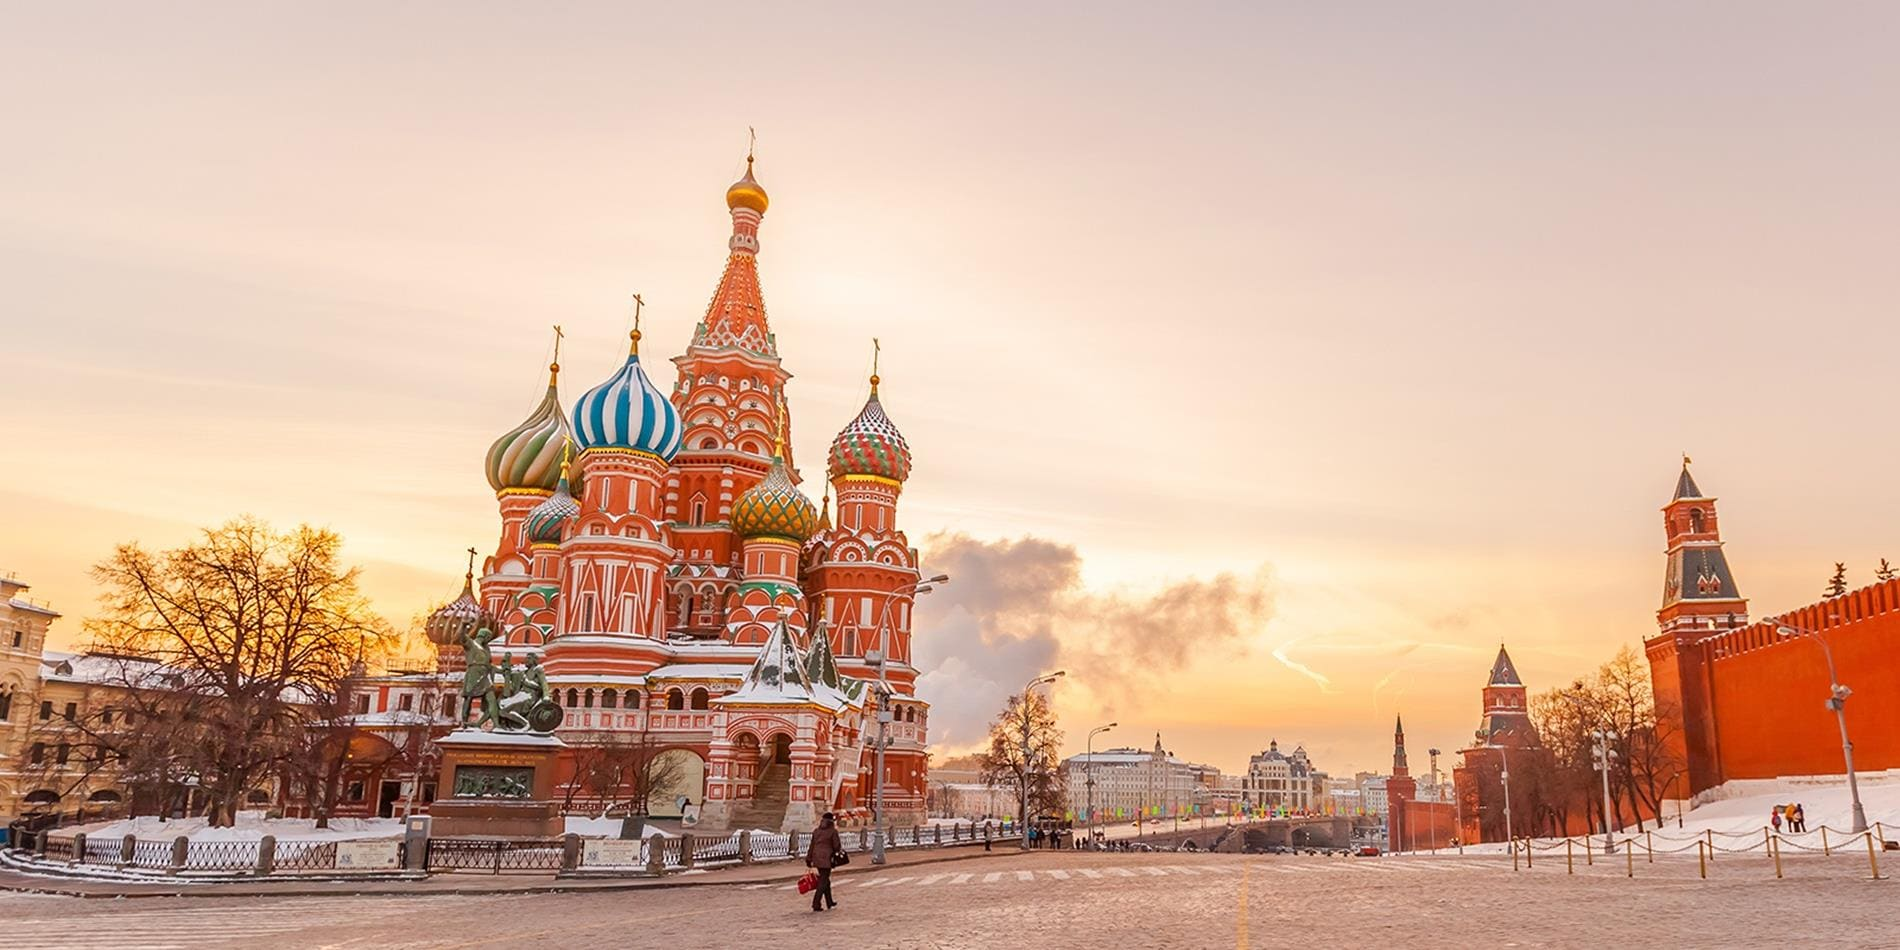 Russia with scandinavia Tour Packages - Book honeymoon ,family,adventure tour packages to Russia with scandinavia  Travel Knits